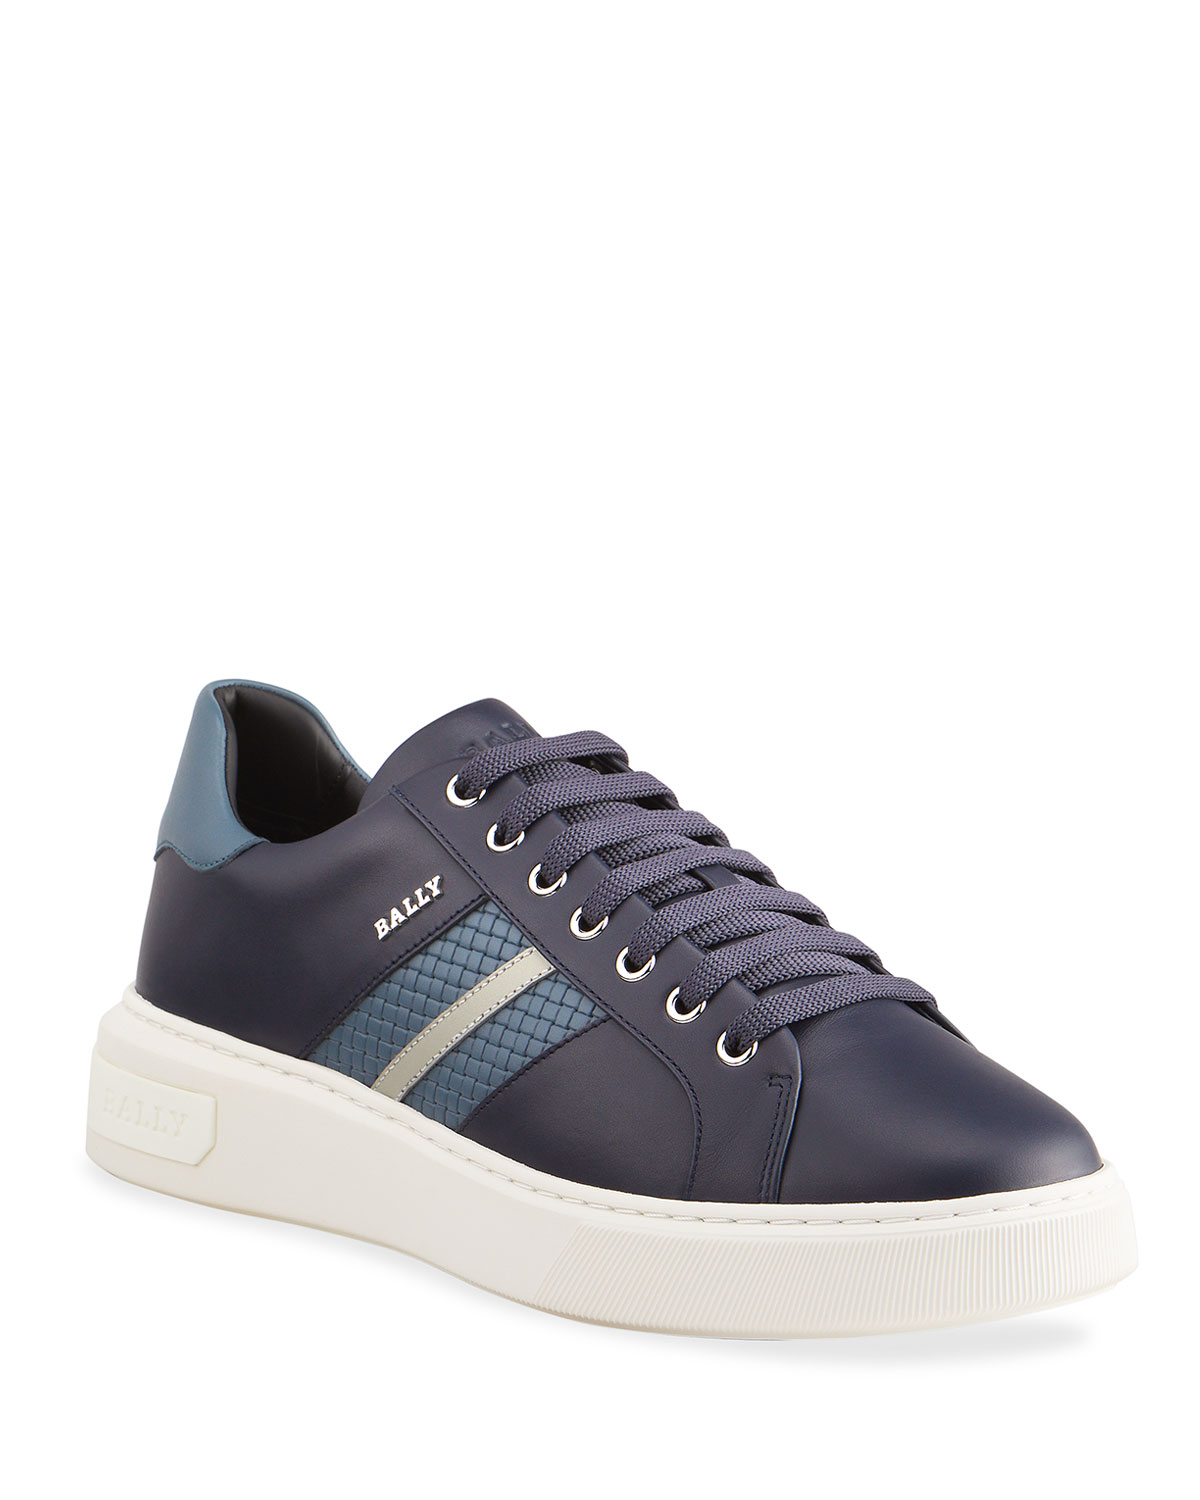 Bally MEN'S MARCUSI 29 WOVEN TRAINSPOTTING LEATHER LOW-TOP SNEAKERS